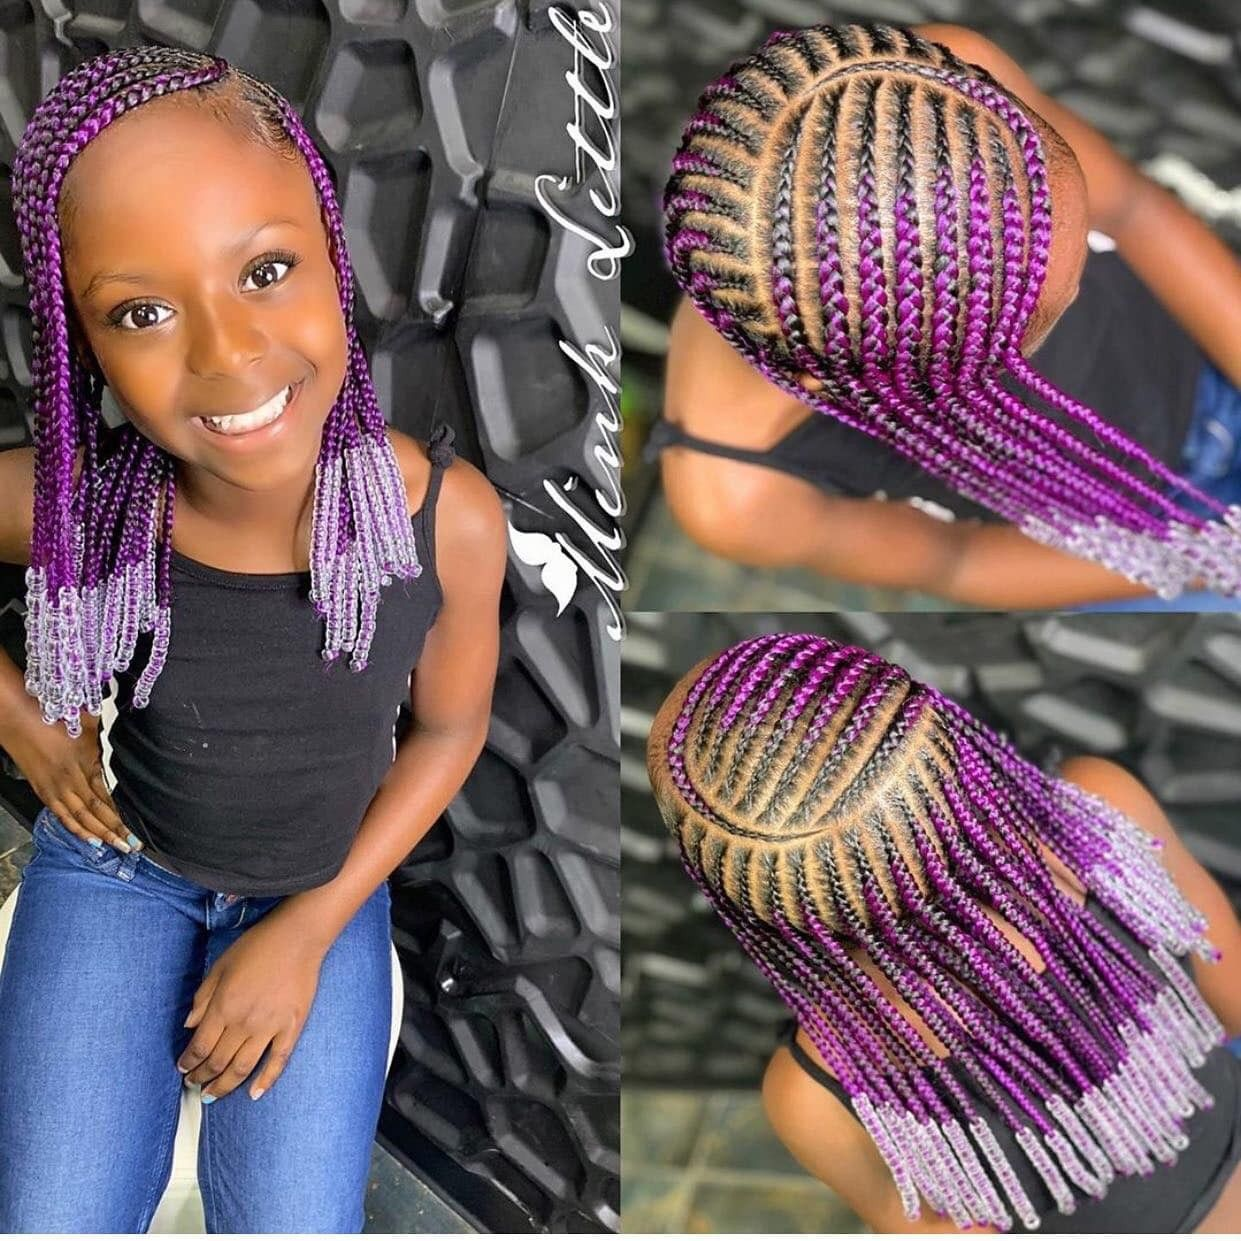 Pin By Markesha Malone On All Natural Locs Curls Waves Black Kids Hairstyles Kids Braids With Beads Little Girl Braids